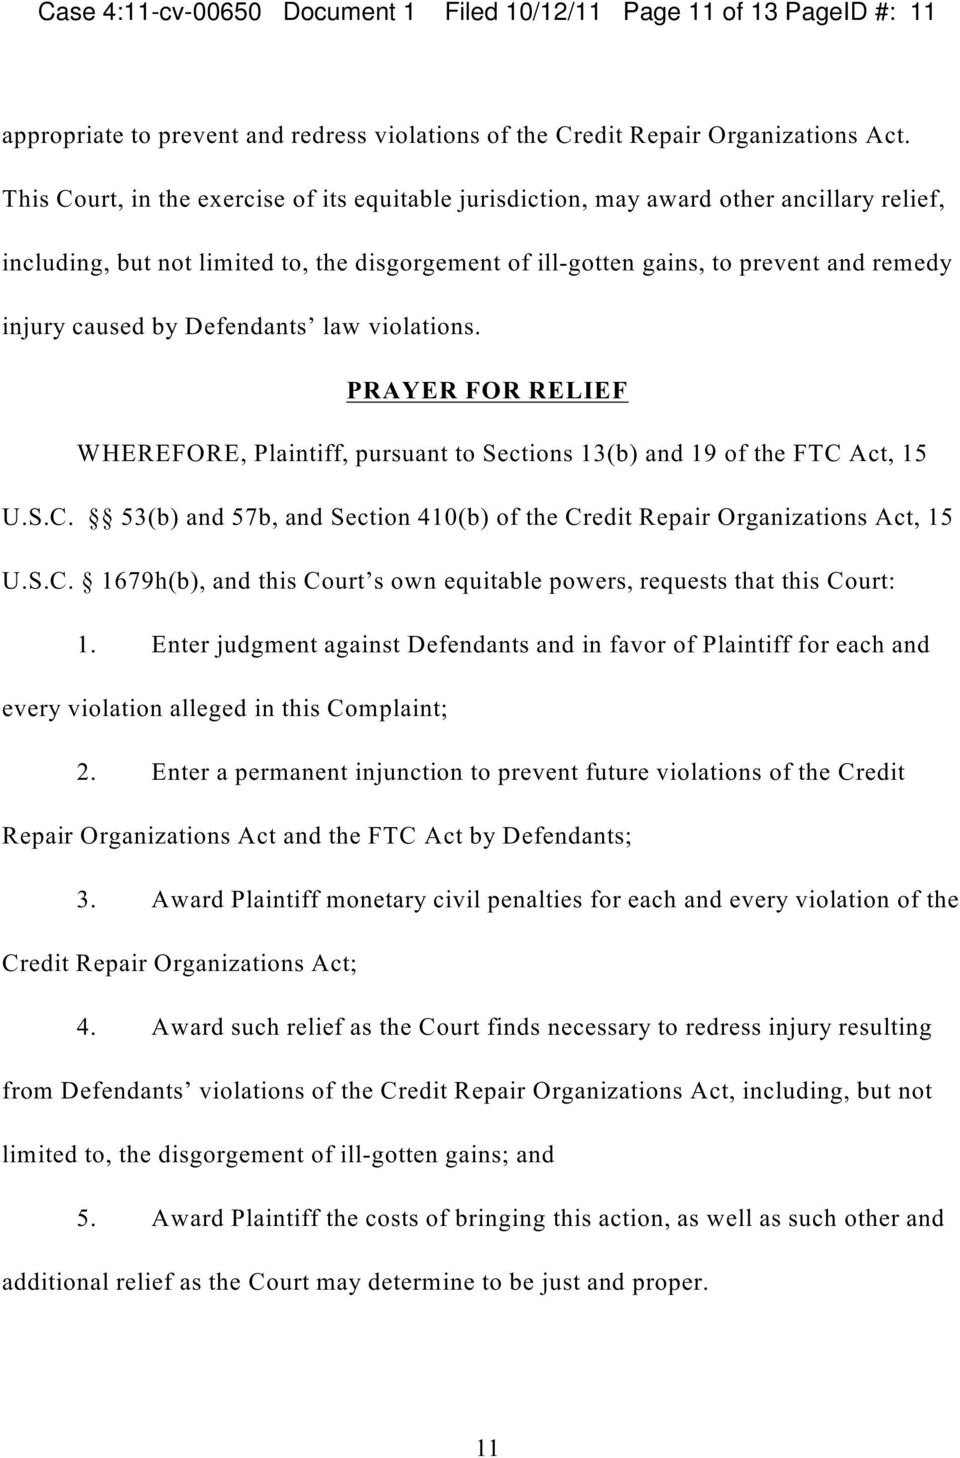 by Defendants law violations. PRAYER FOR RELIEF WHEREFORE, Plaintiff, pursuant to Sections 13(b and 19 of the FTC Act, 15 U.S.C. 53(b and 57b, and Section 410(b of the Credit Repair Organizations Act, 15 U.